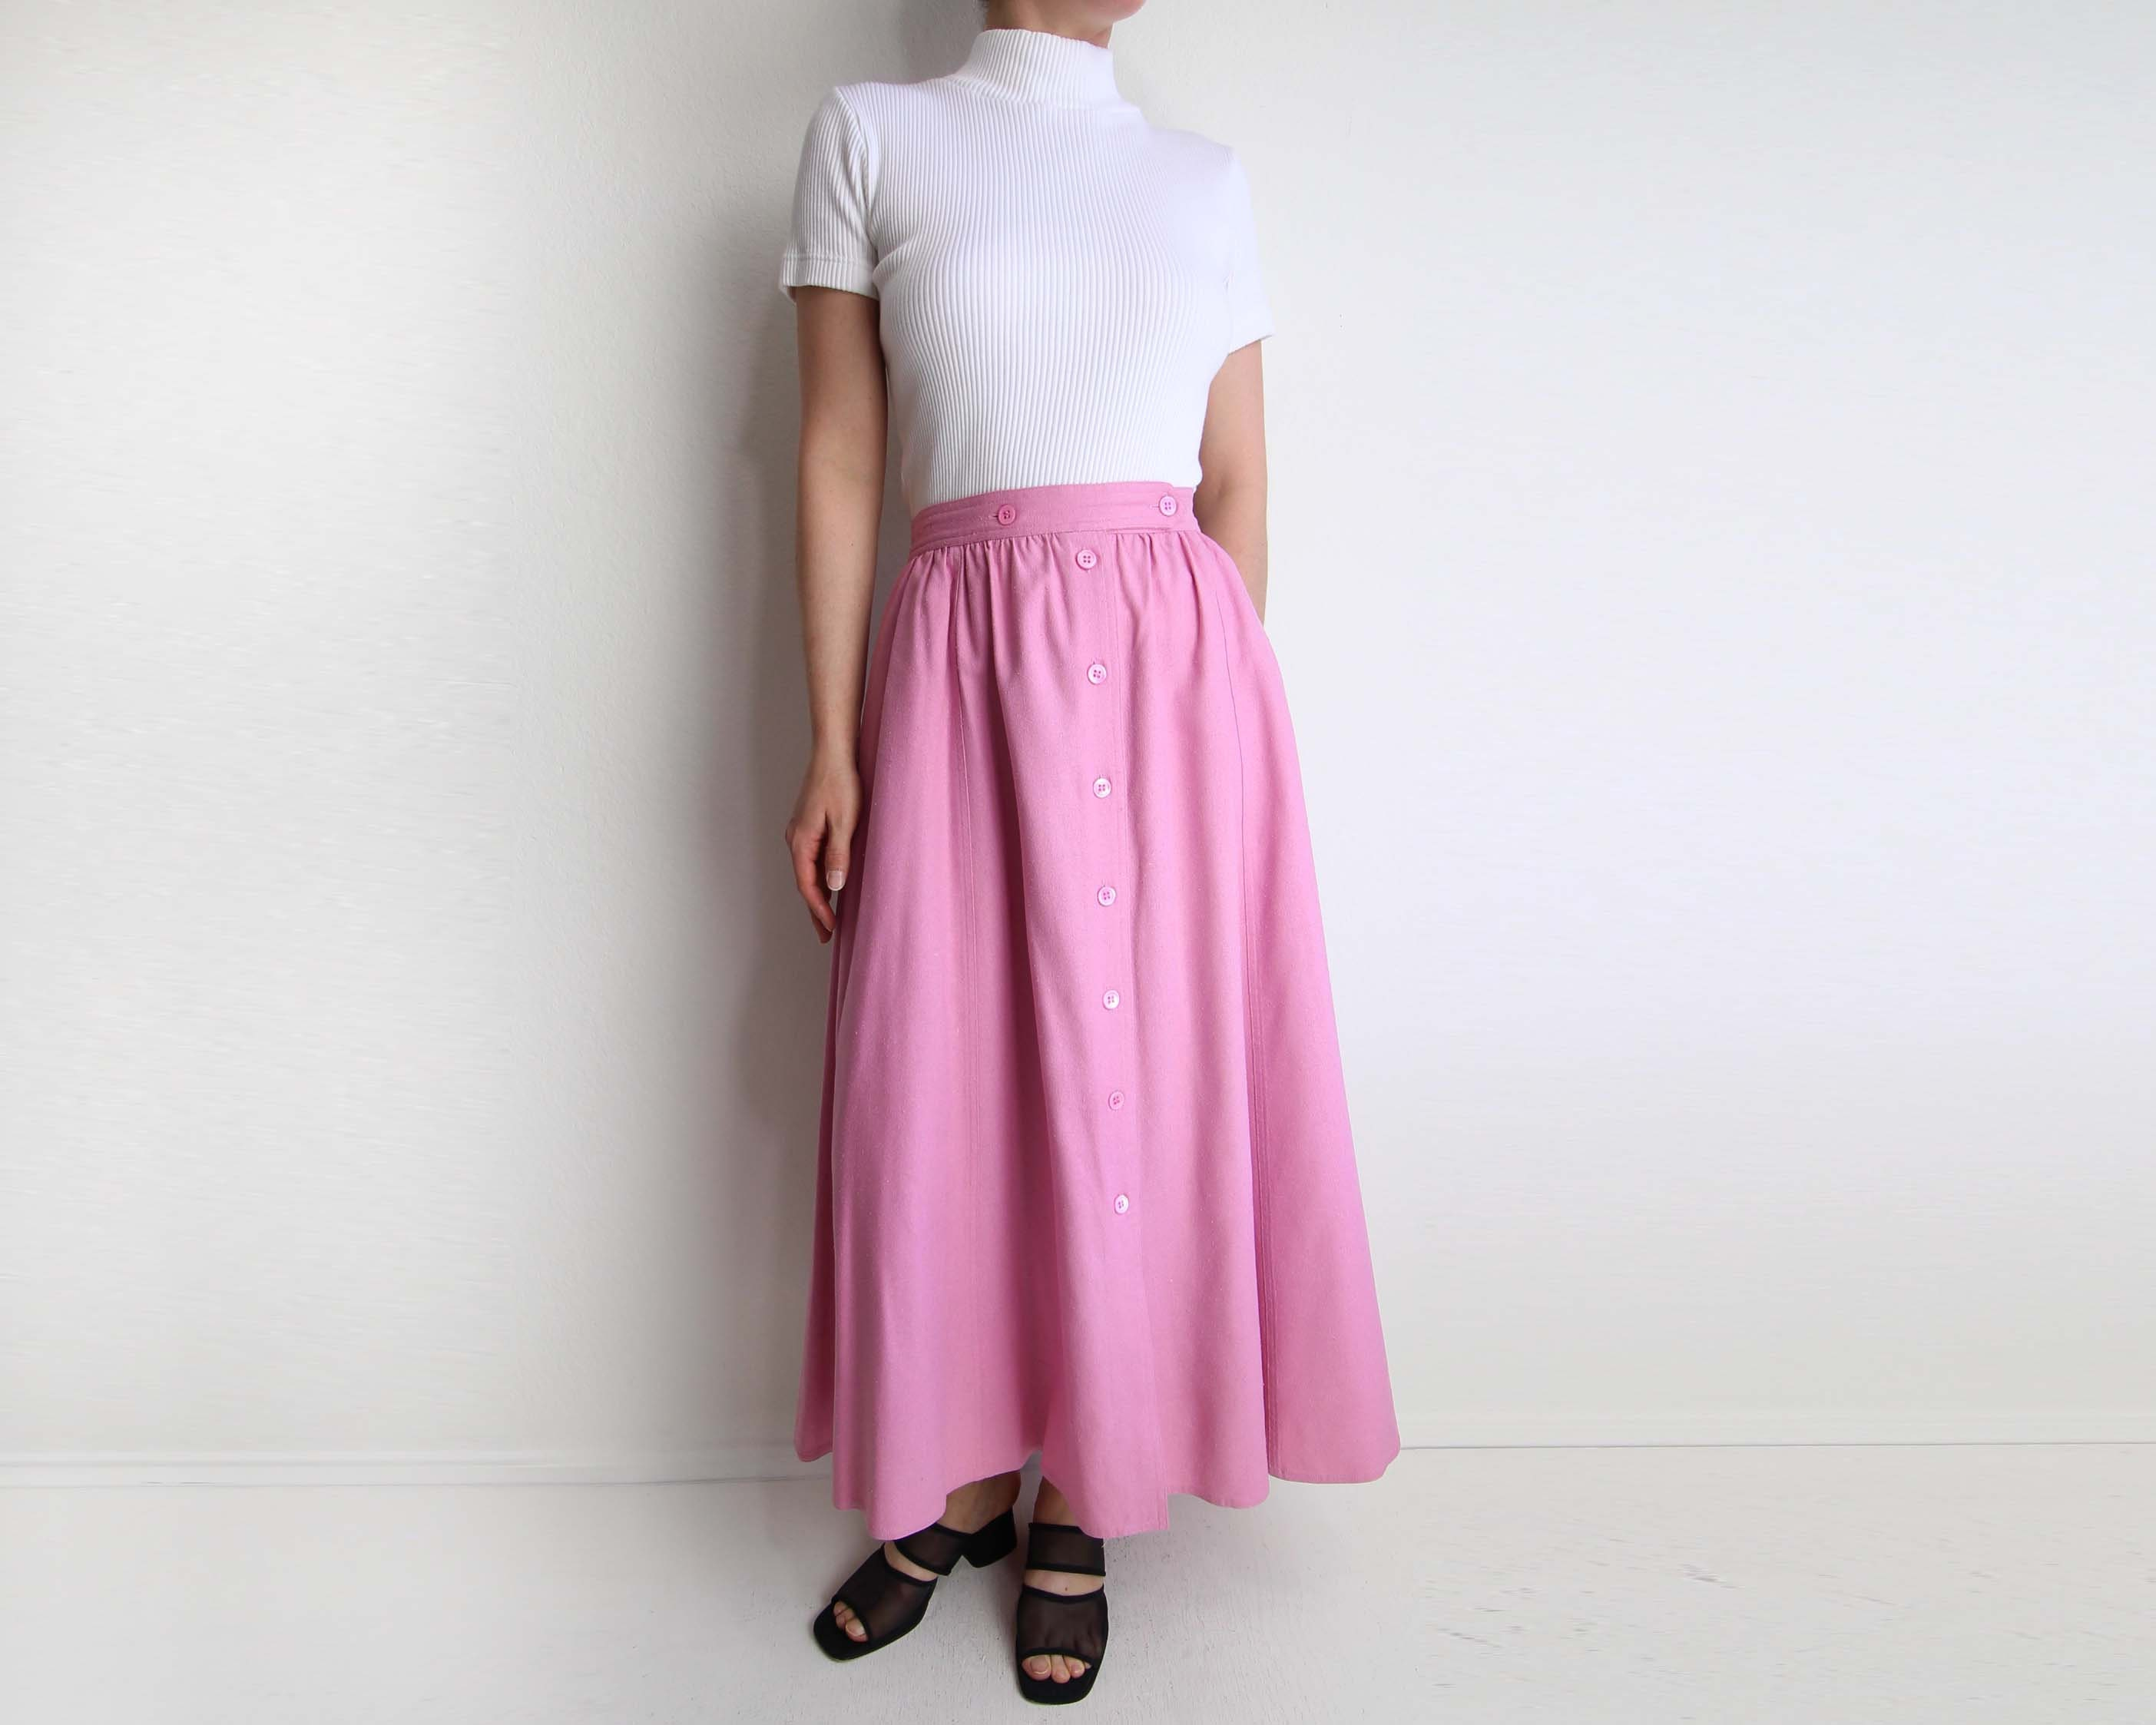 609687f32d3d0c Vintage Pink Skirt Womens 1980s Raw Silk Long Medium. gallery photo ...